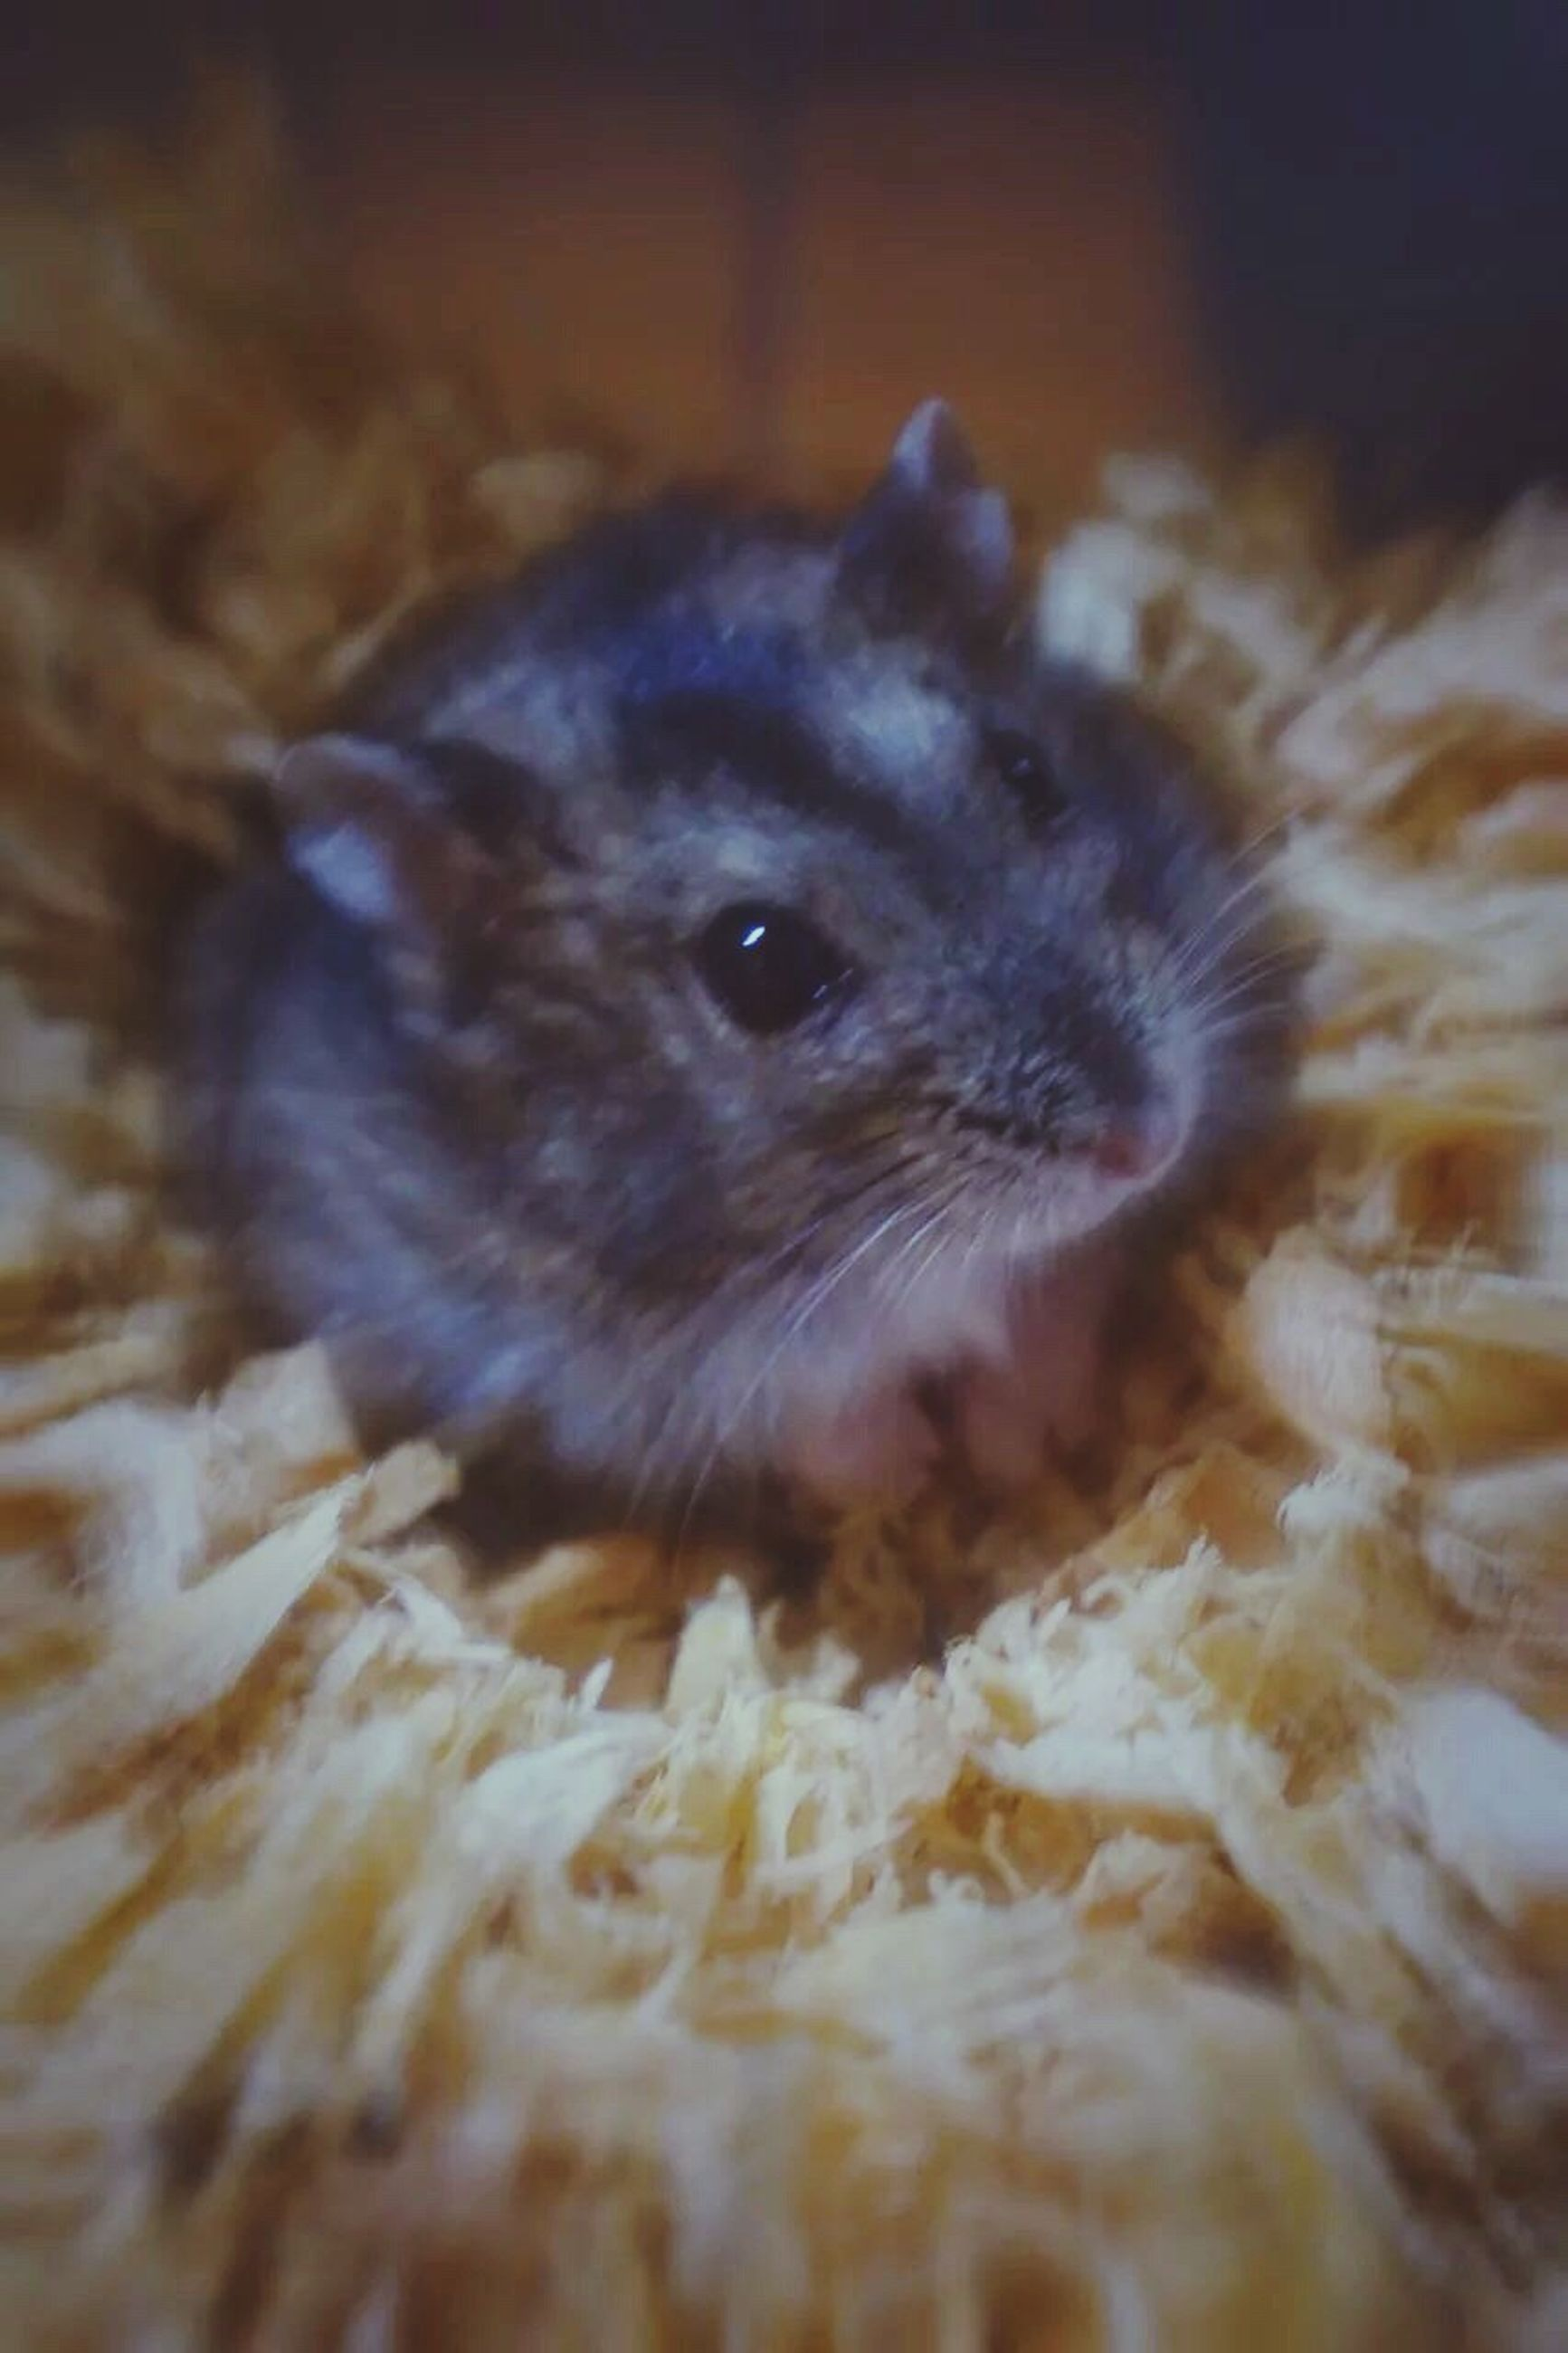 animal themes, one animal, rodent, pets, indoors, mammal, close-up, hamster, domestic animals, nature, no people, animals in the wild, day